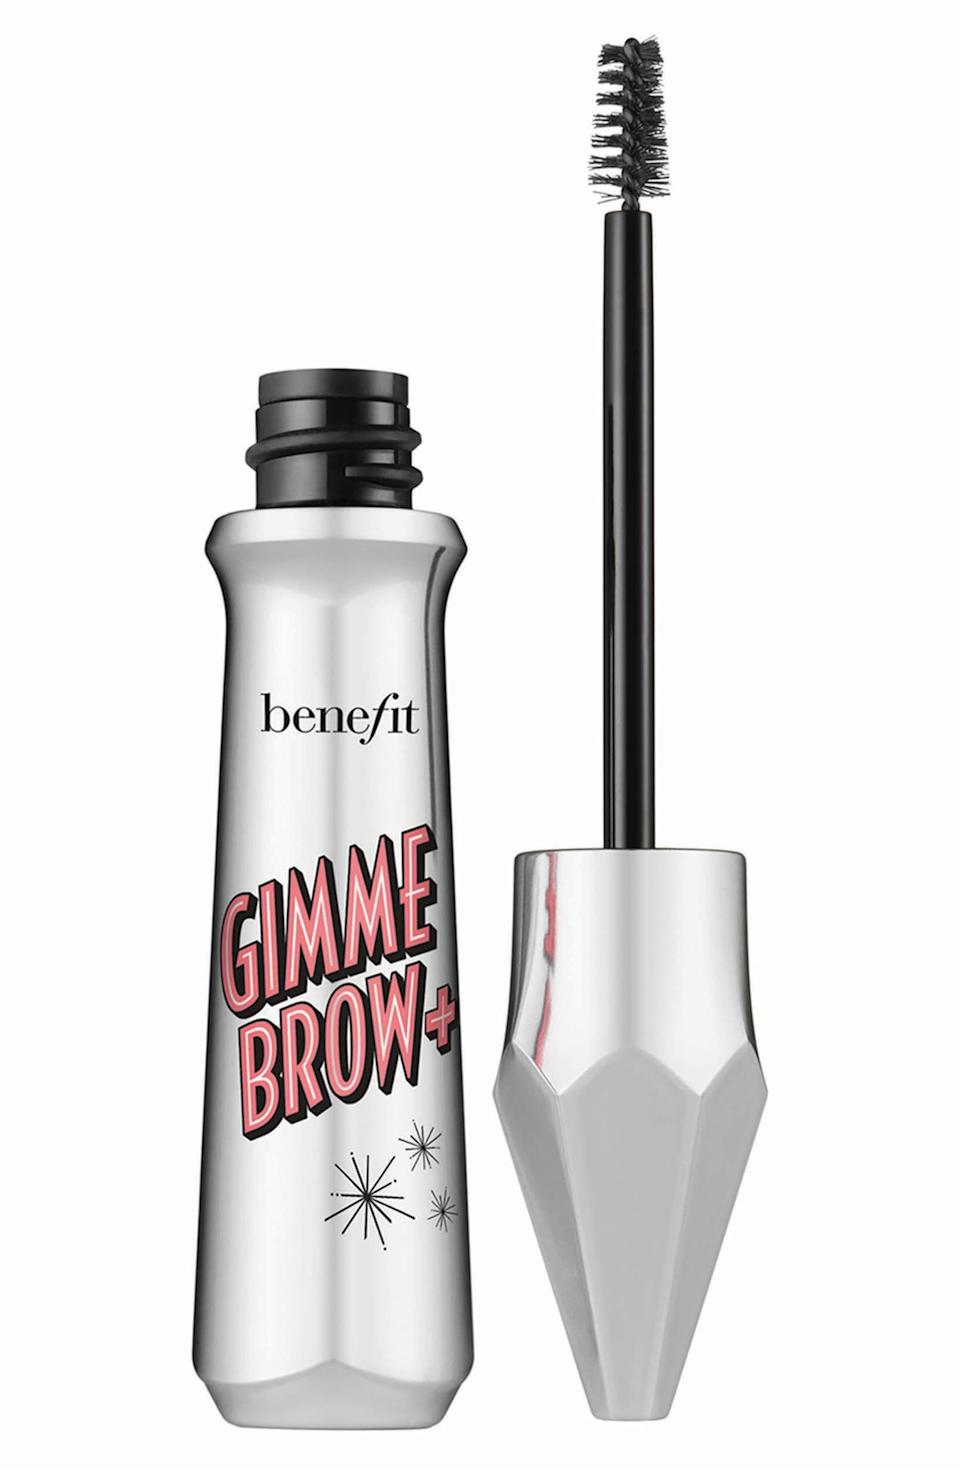 """<p><strong>BENEFIT COSMETICS</strong></p><p>nordstrom.com</p><p><strong>$12.00</strong></p><p><a href=""""https://go.redirectingat.com?id=74968X1596630&url=https%3A%2F%2Fshop.nordstrom.com%2Fs%2Fbenefit-gimme-brow-volumizing-eyebrow-gel%2F5514414&sref=http%3A%2F%2Fwww.cosmopolitan.com%2Fstyle-beauty%2Ffashion%2Fg30057282%2Fshop-nordstrom-black-friday-cyber-monday-sale-2019%2F"""" rel=""""nofollow noopener"""" target=""""_blank"""" data-ylk=""""slk:Shop Now"""" class=""""link rapid-noclick-resp"""">Shop Now</a></p><p>Your brows will look more defined, voluminous, and will *actually* stay in place with Benefit's popular fiber gel. </p>"""